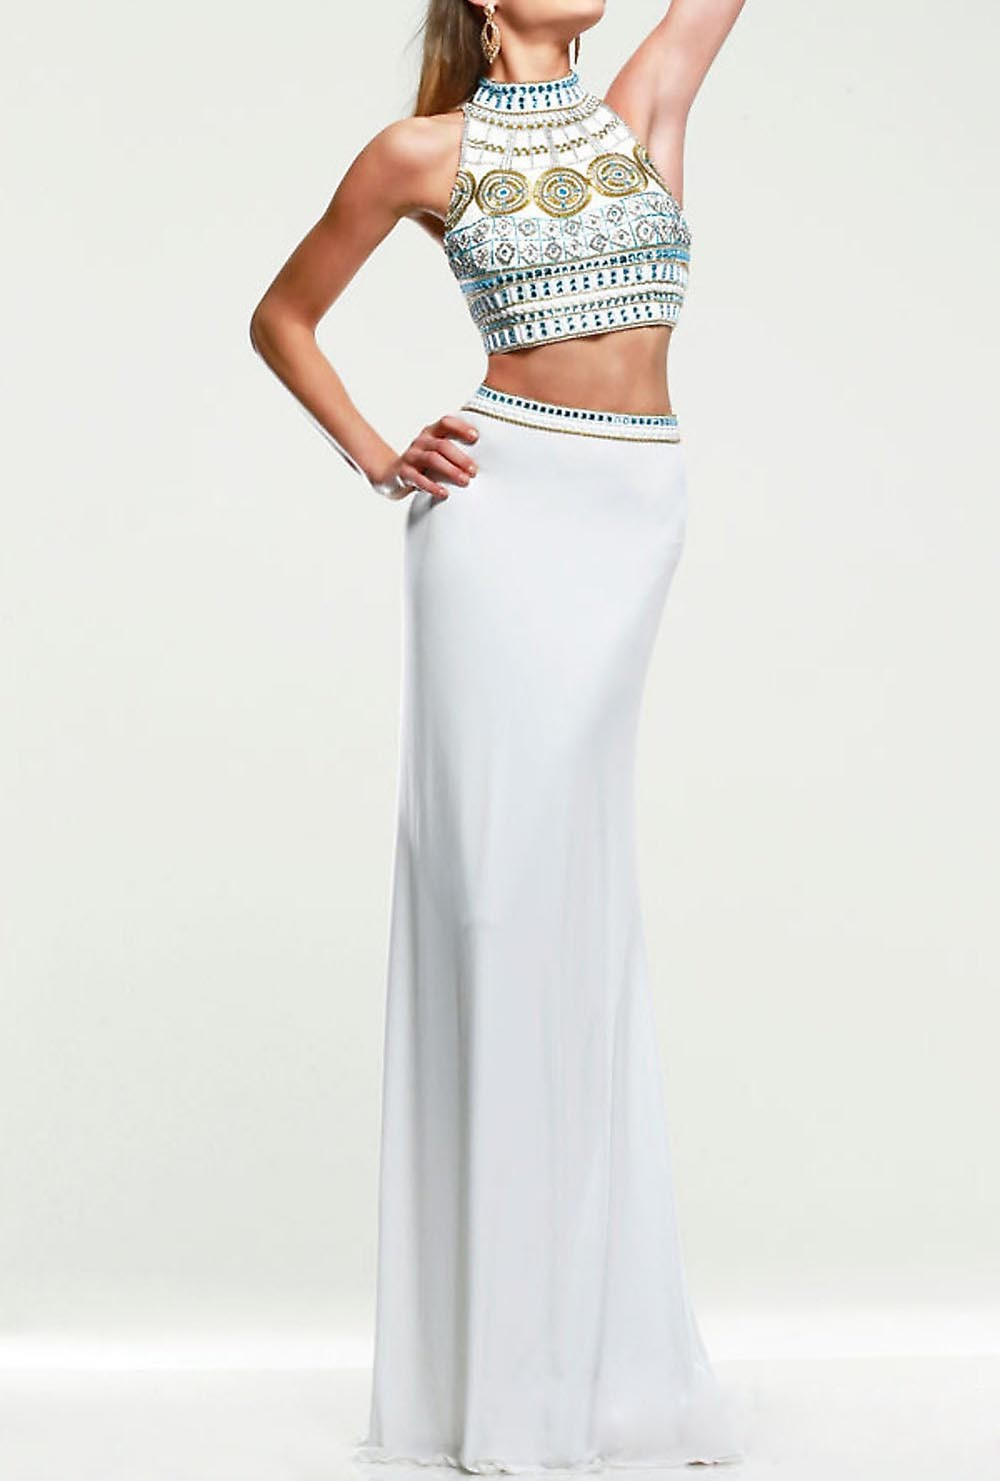 00f99ca7eaf6 Get Quotations · Sexy Long crop top Prom Dresses 2015 Rhinestone Two Piece Prom  Dress high neck open back